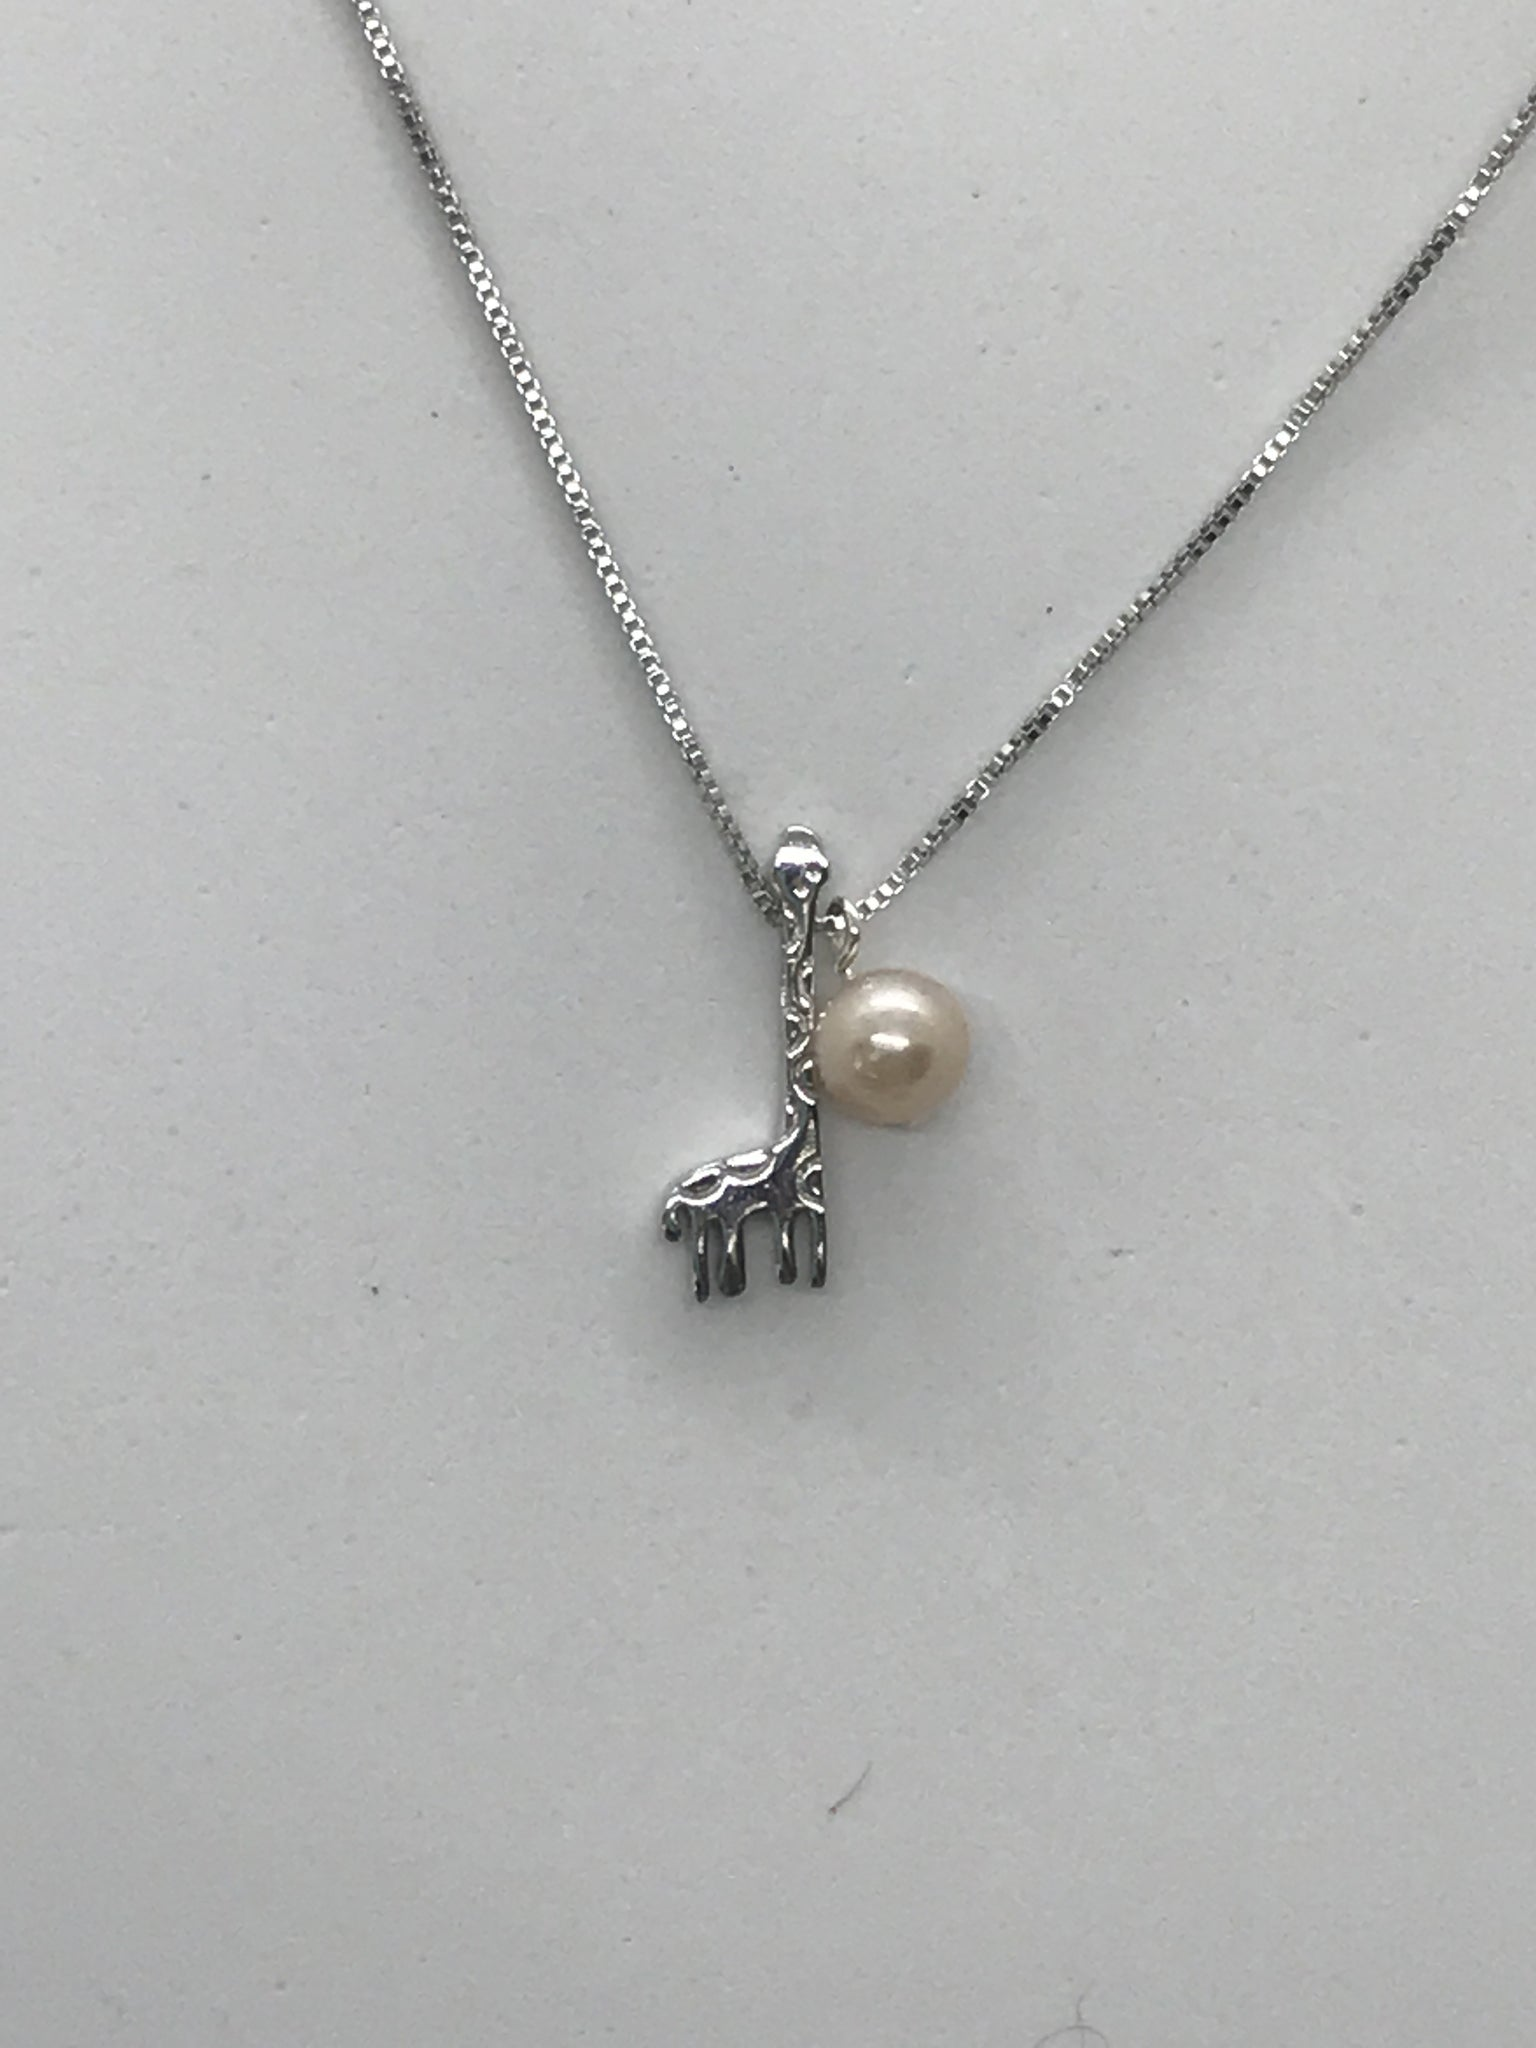 song giraffe necklace image lark products tall product